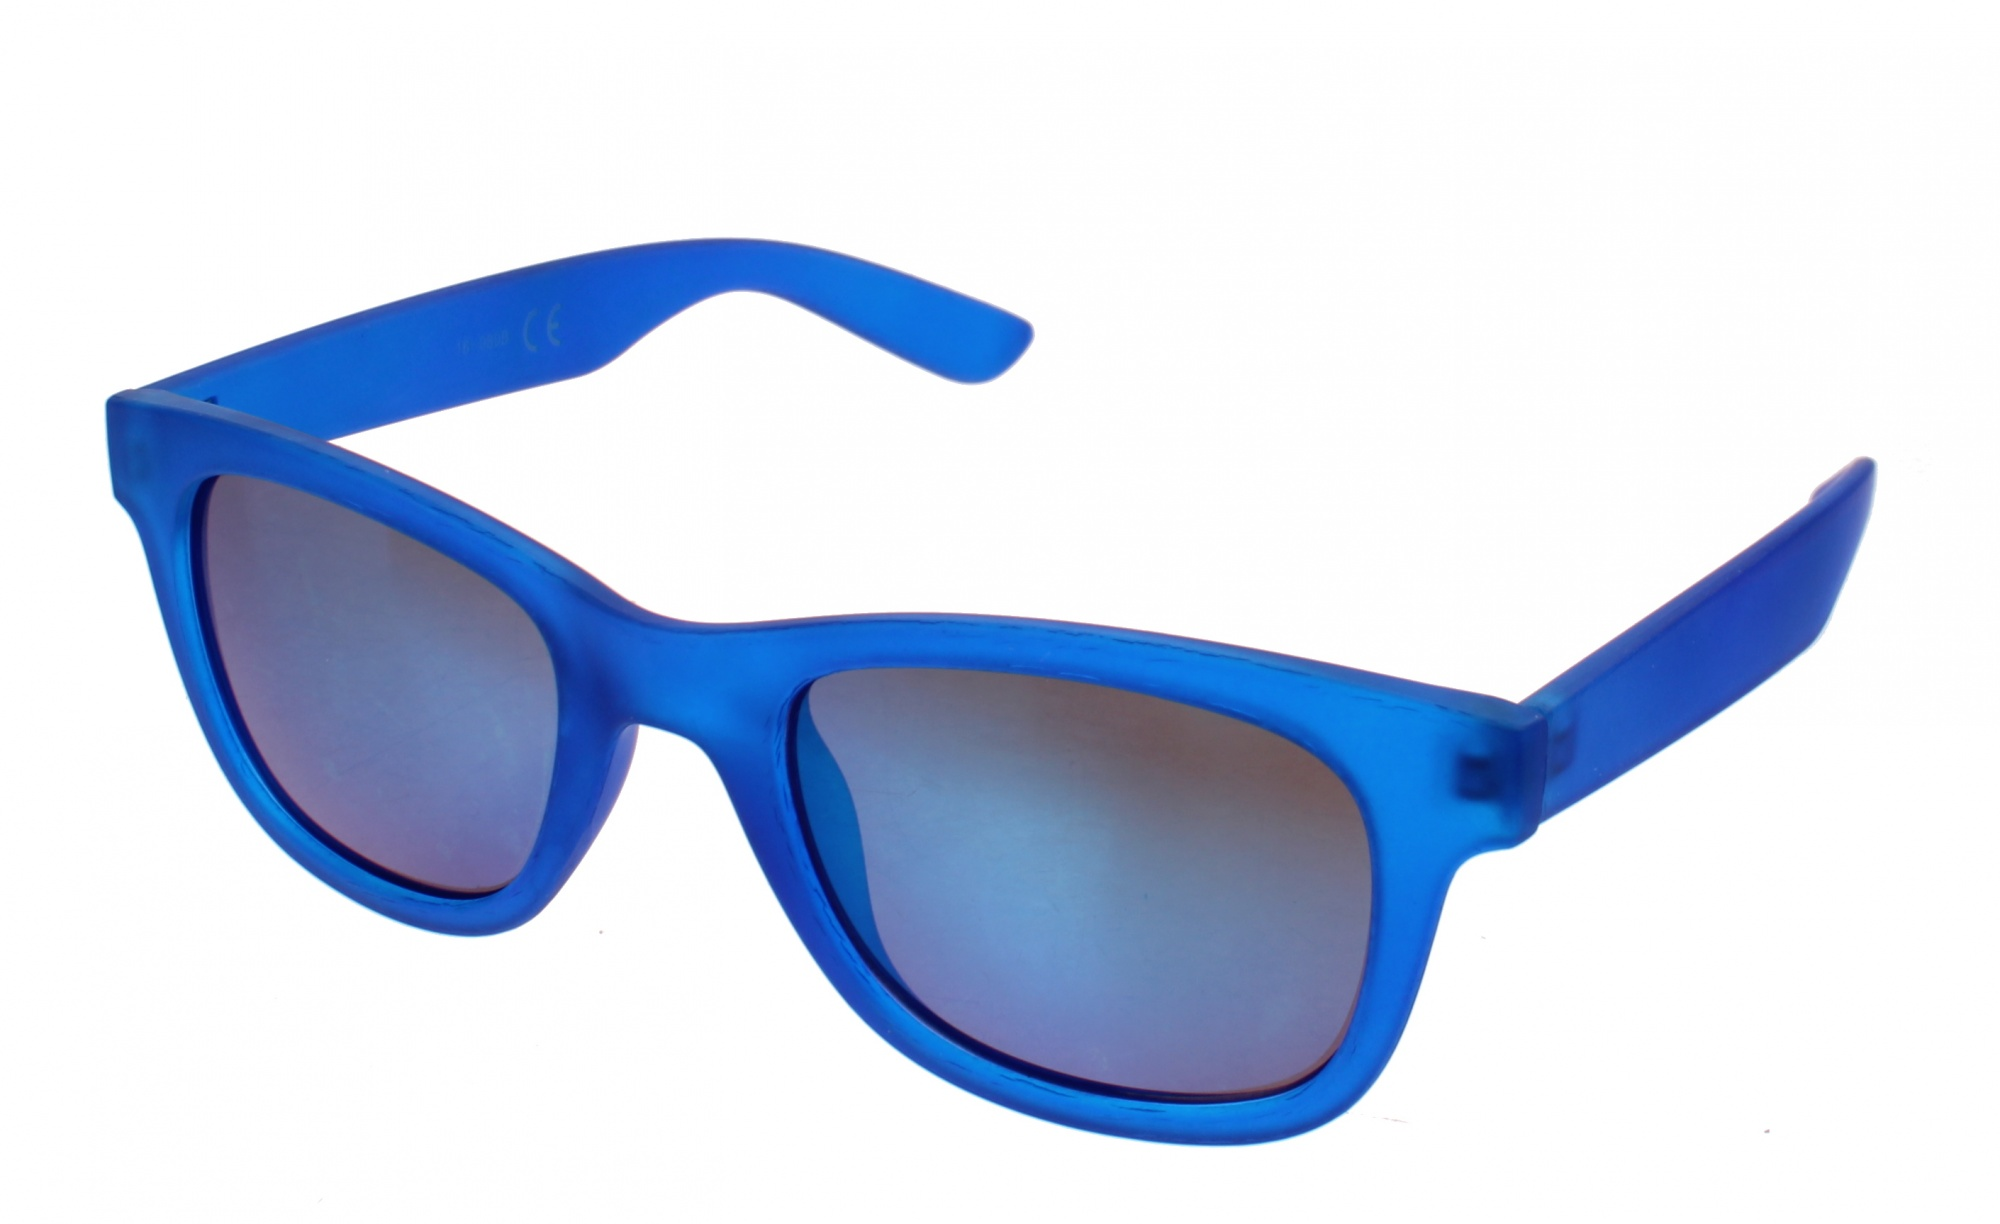 67621059b Kost sunglasses unisex blue with blue lens (16-080B) - Internet-Eyewear